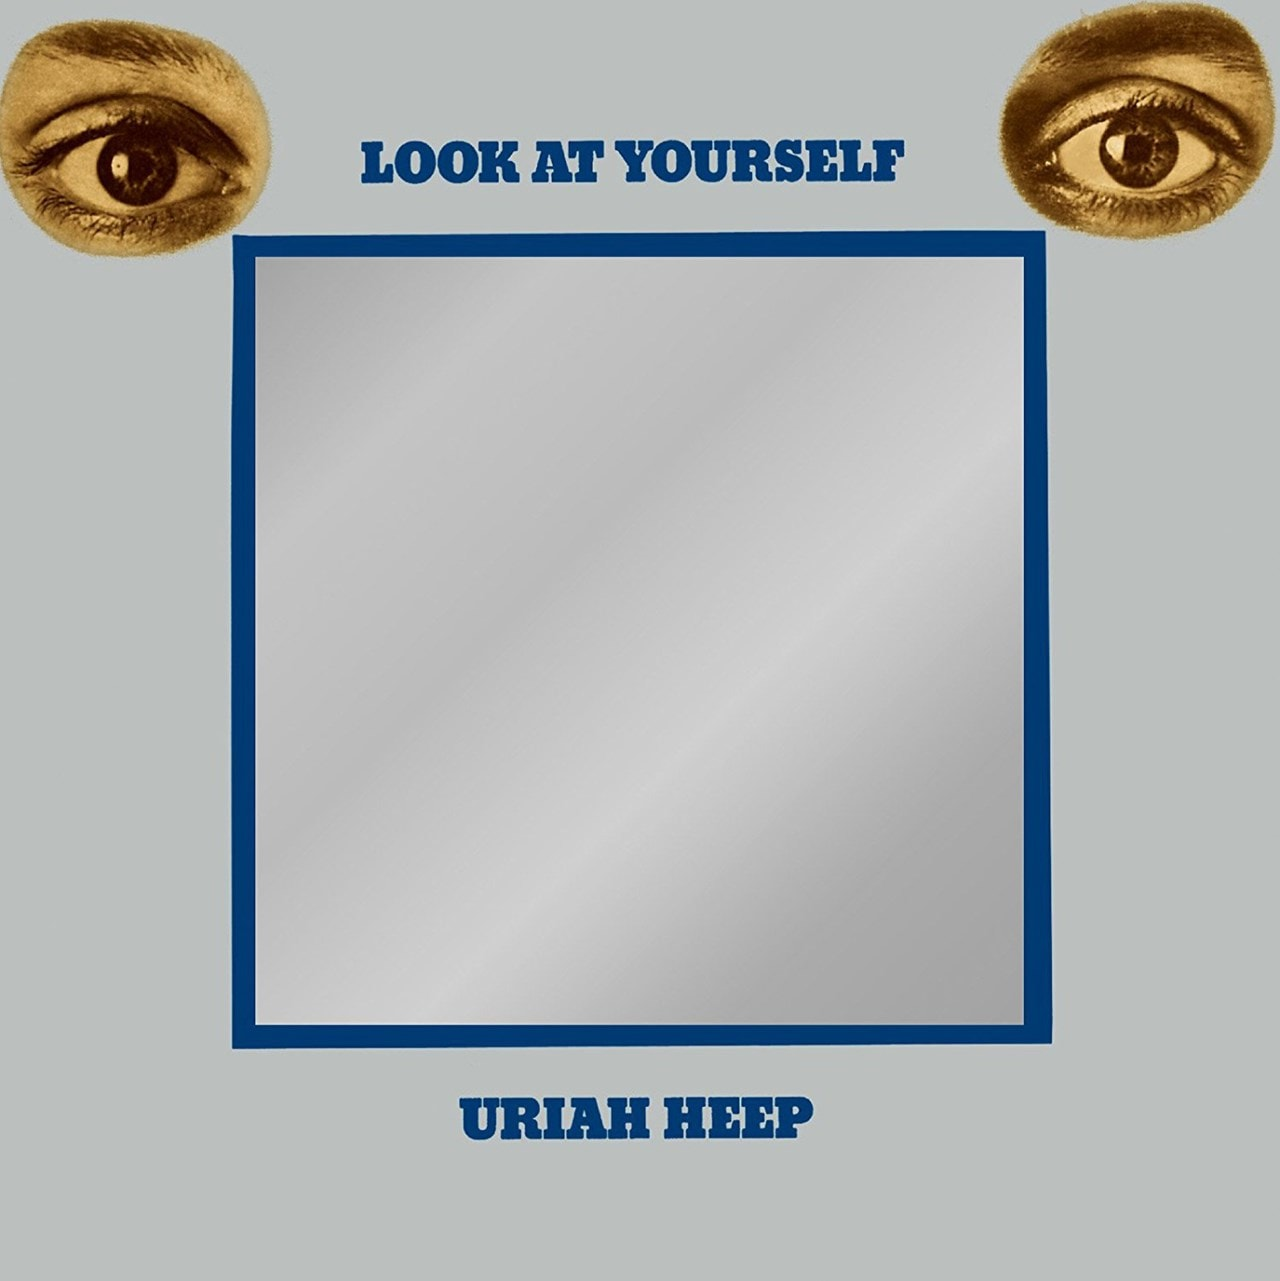 Look at Yourself - 1